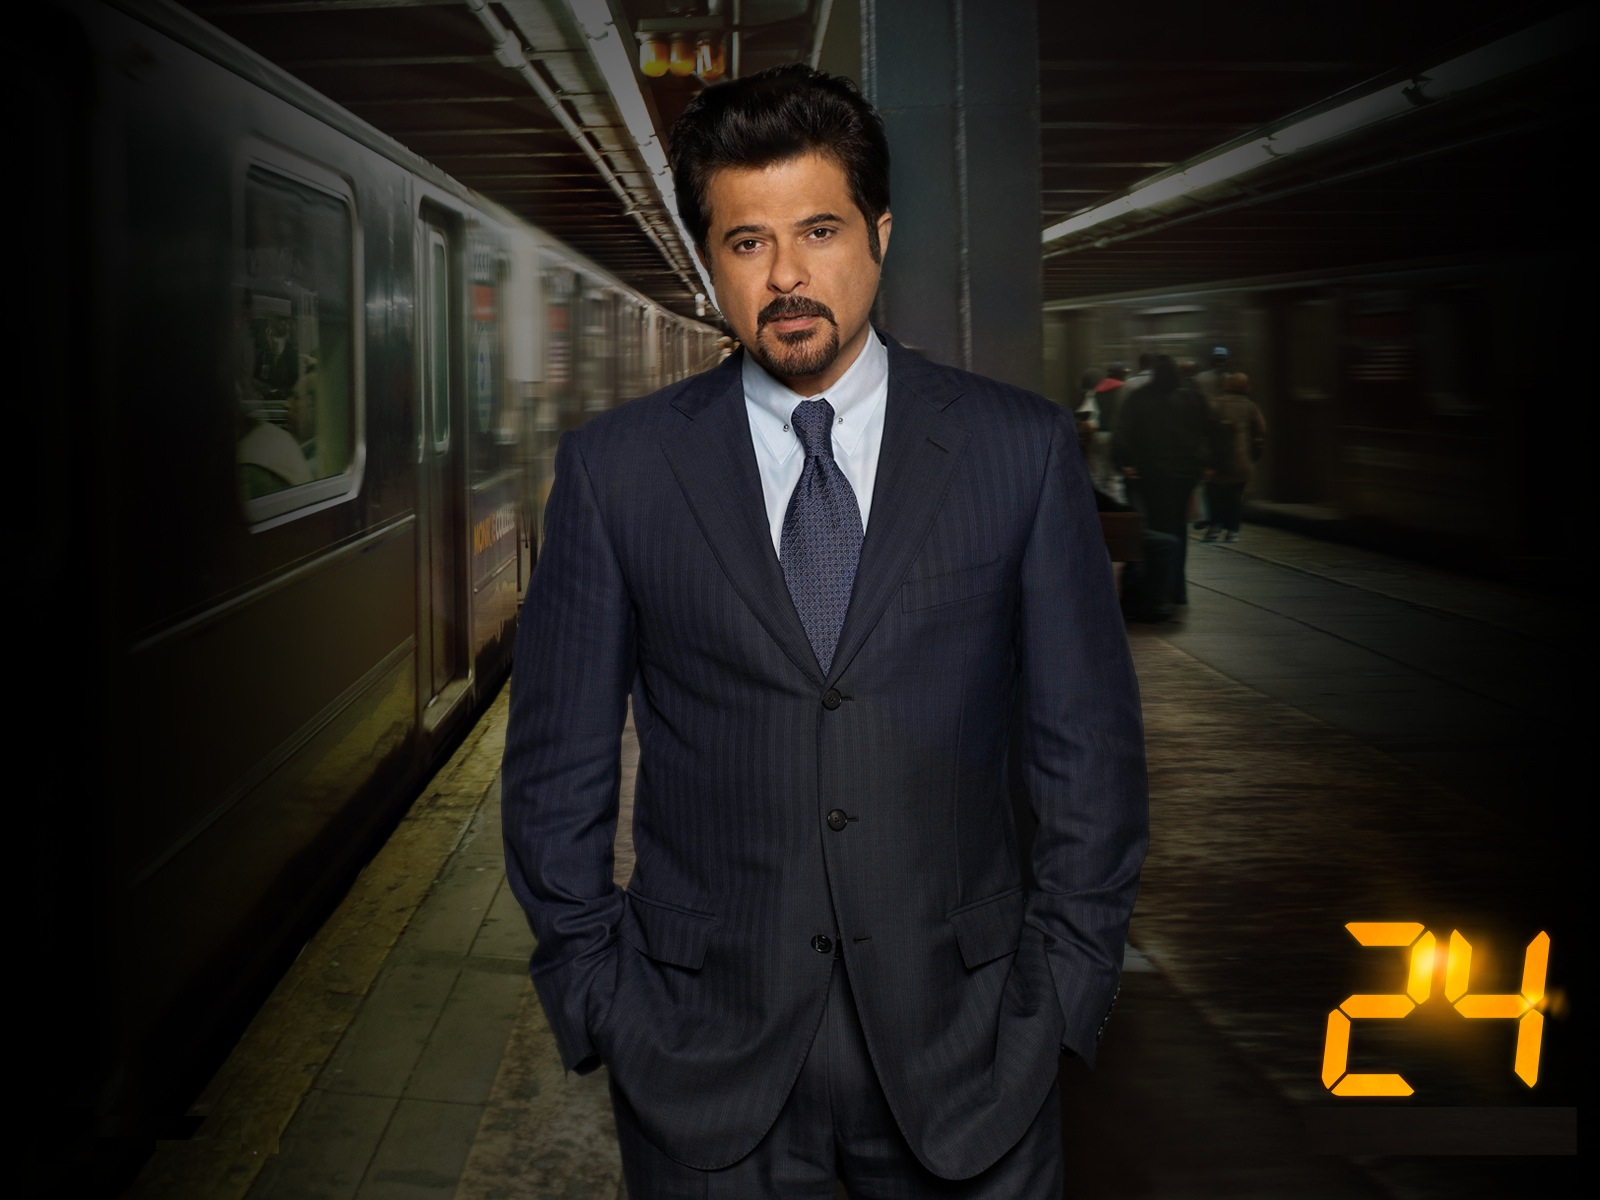 See Anil Kapoor on ITV and BBC this week